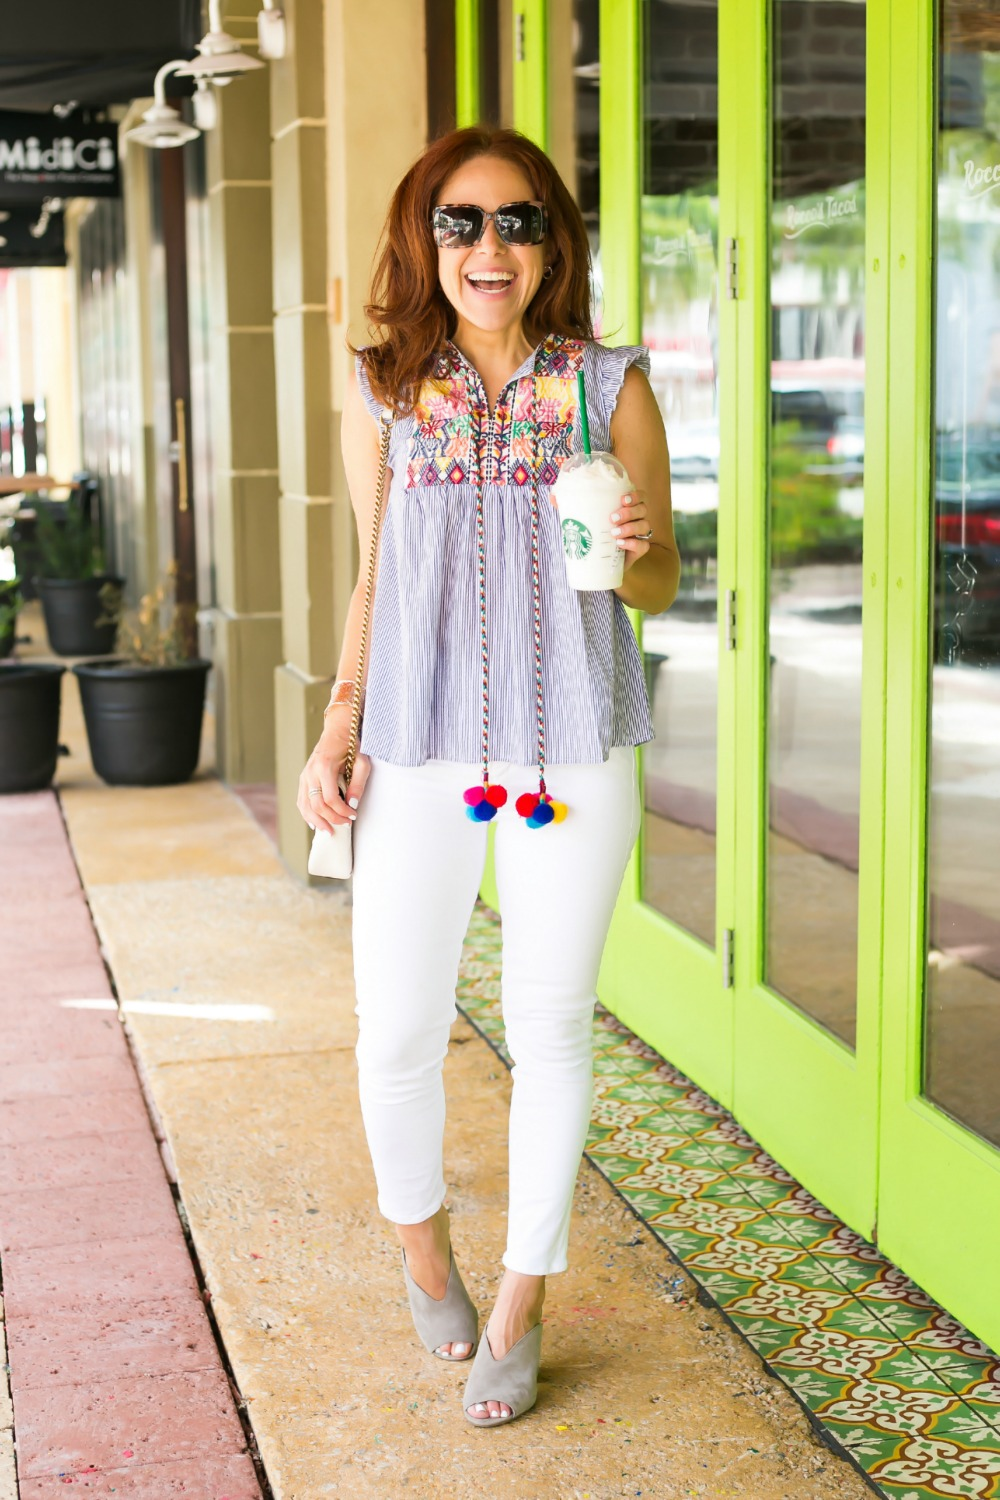 the under $20 summer top you need - Cutest $17 Summer Top, Basically Ever featured by popular Florida style blogger The Modern Savvy